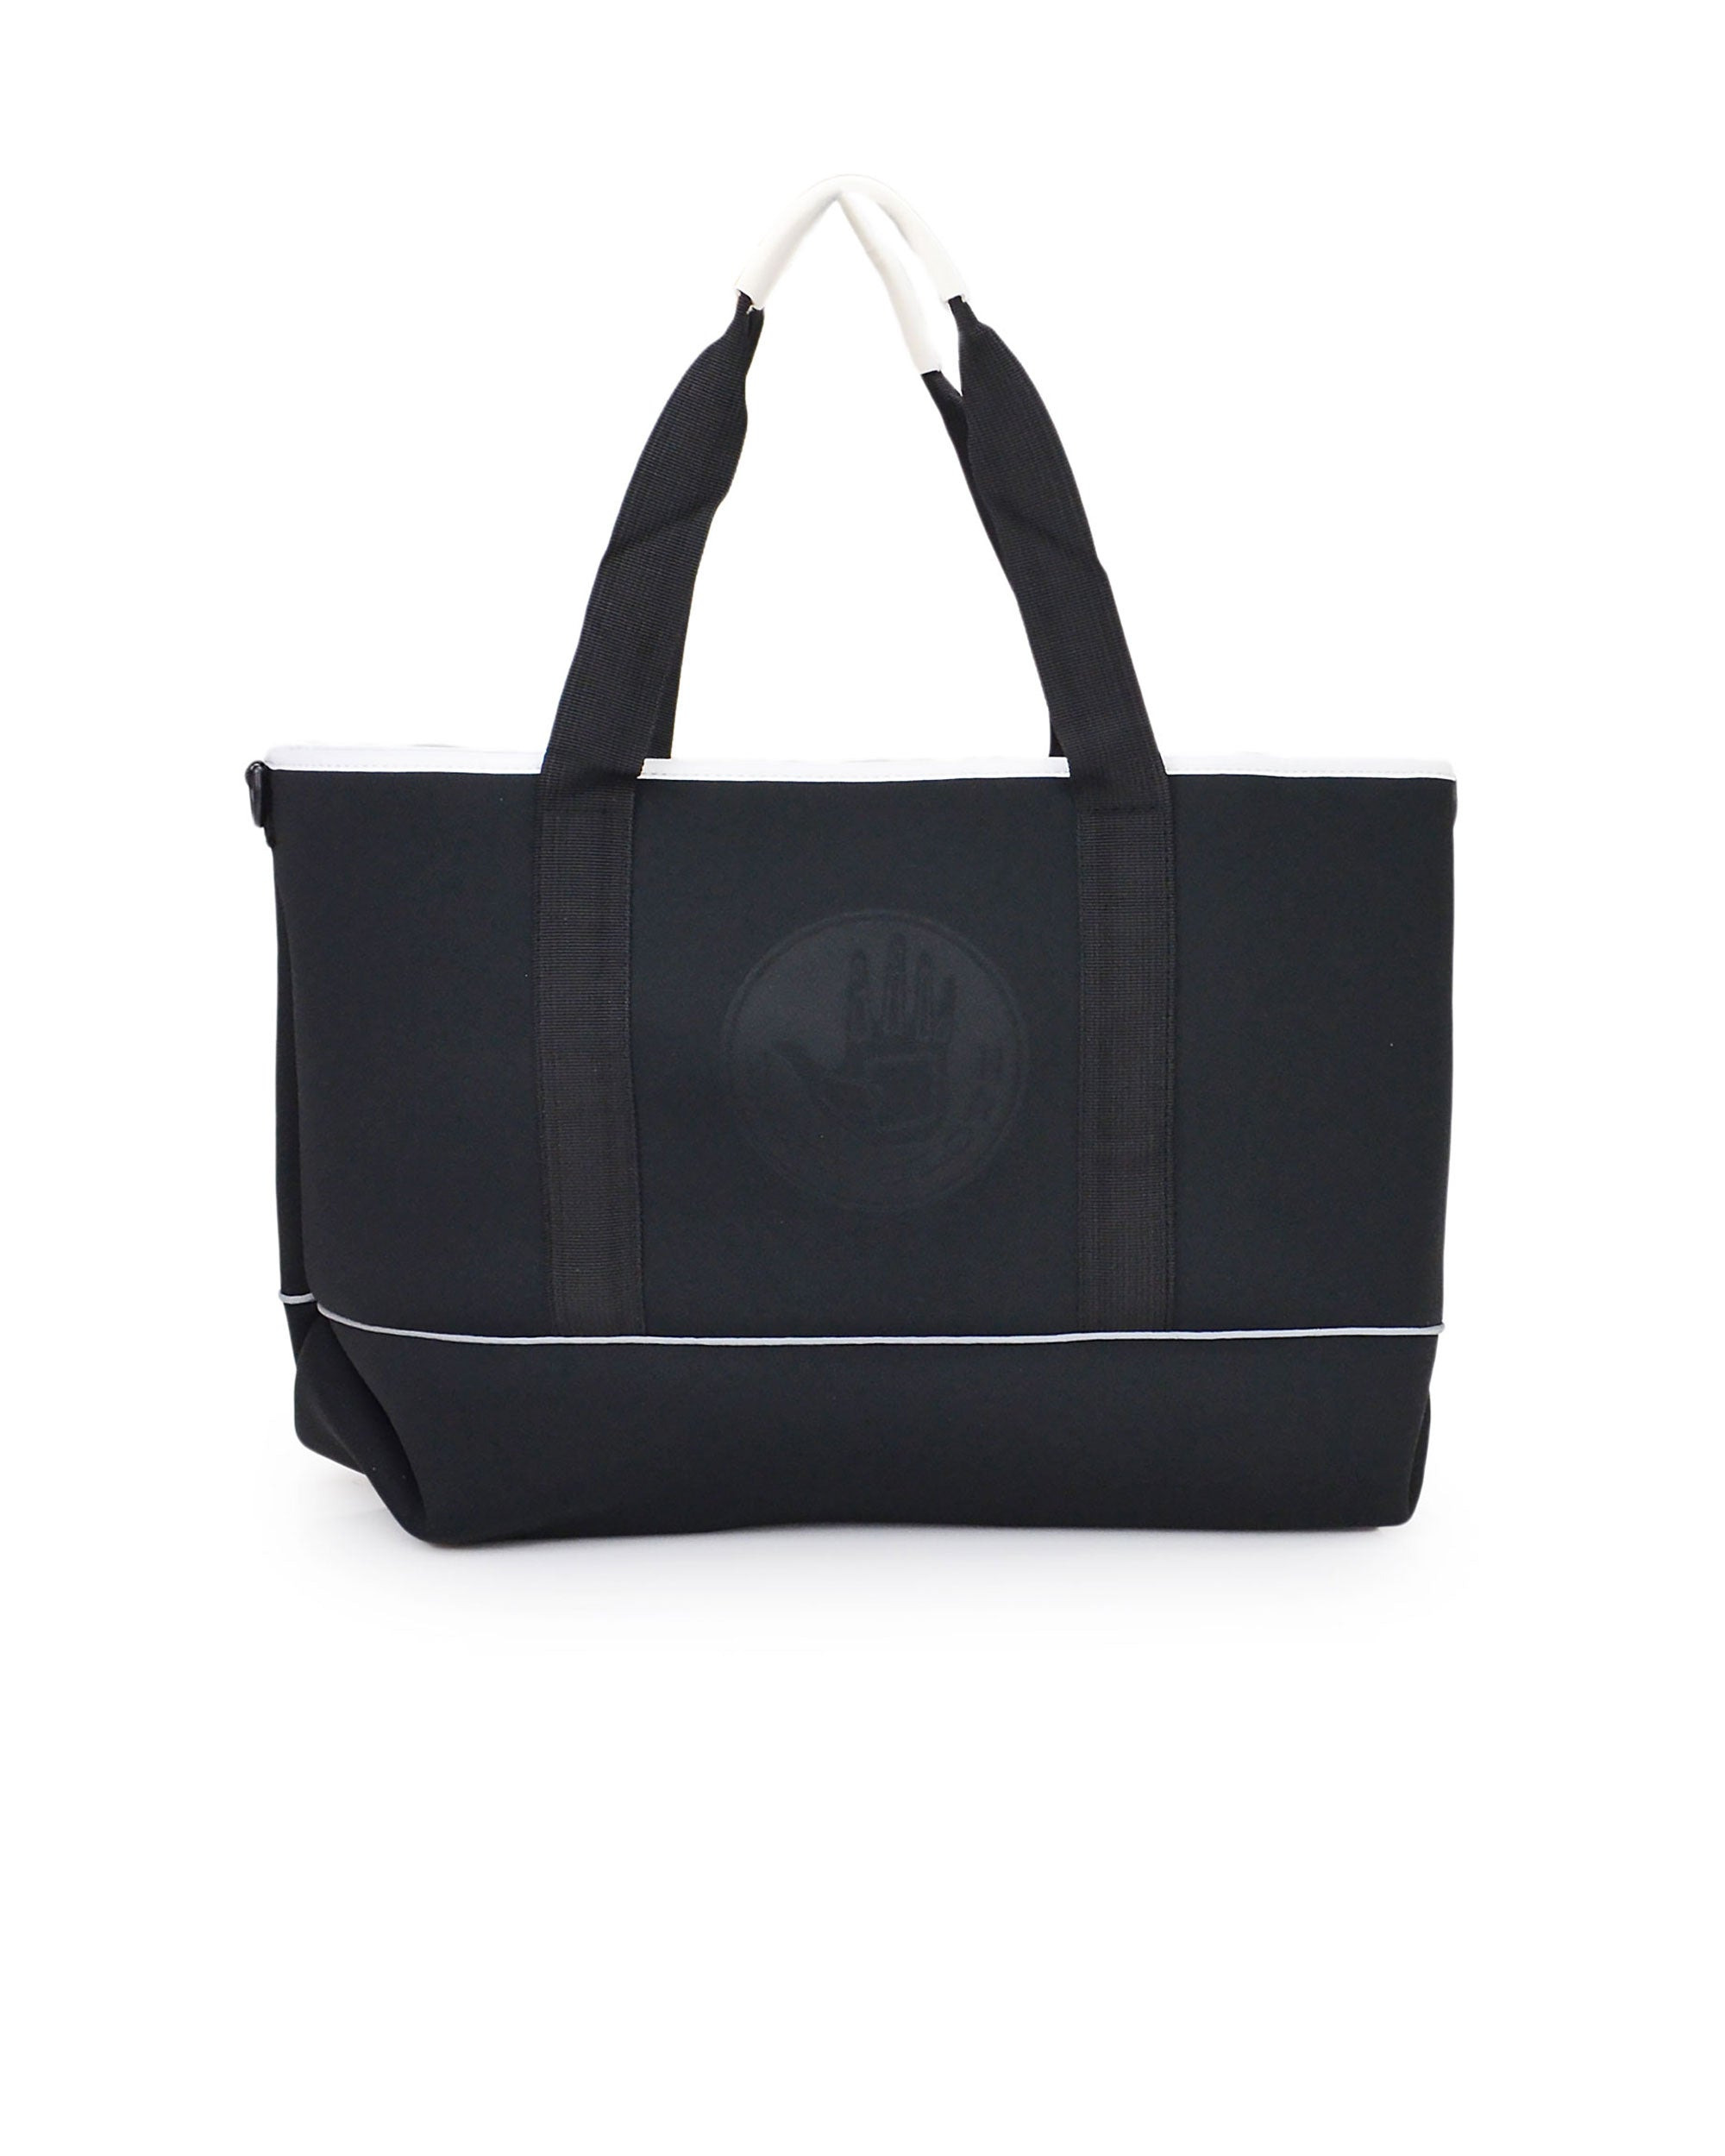 High Tide Large All-Day Tote - Black/White